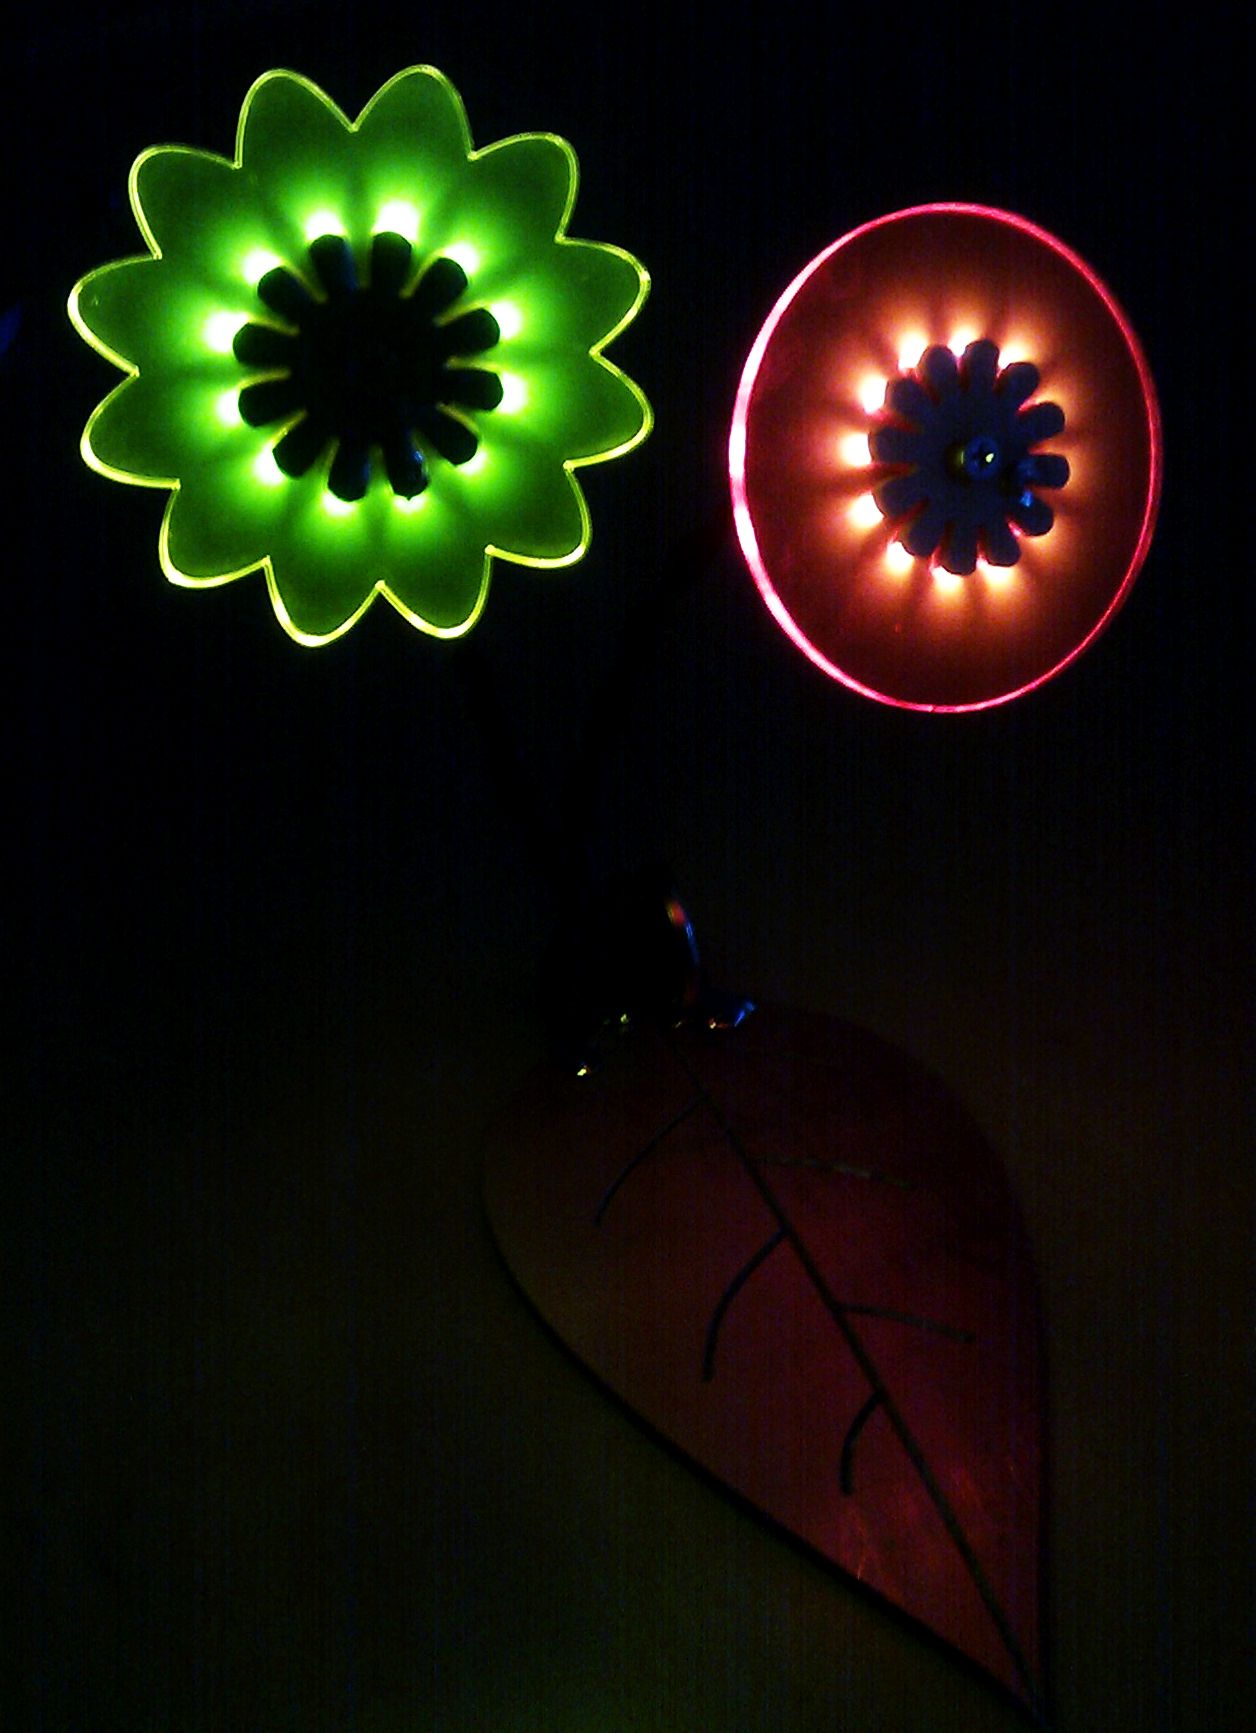 Acrylic flowers of SMD LEDs